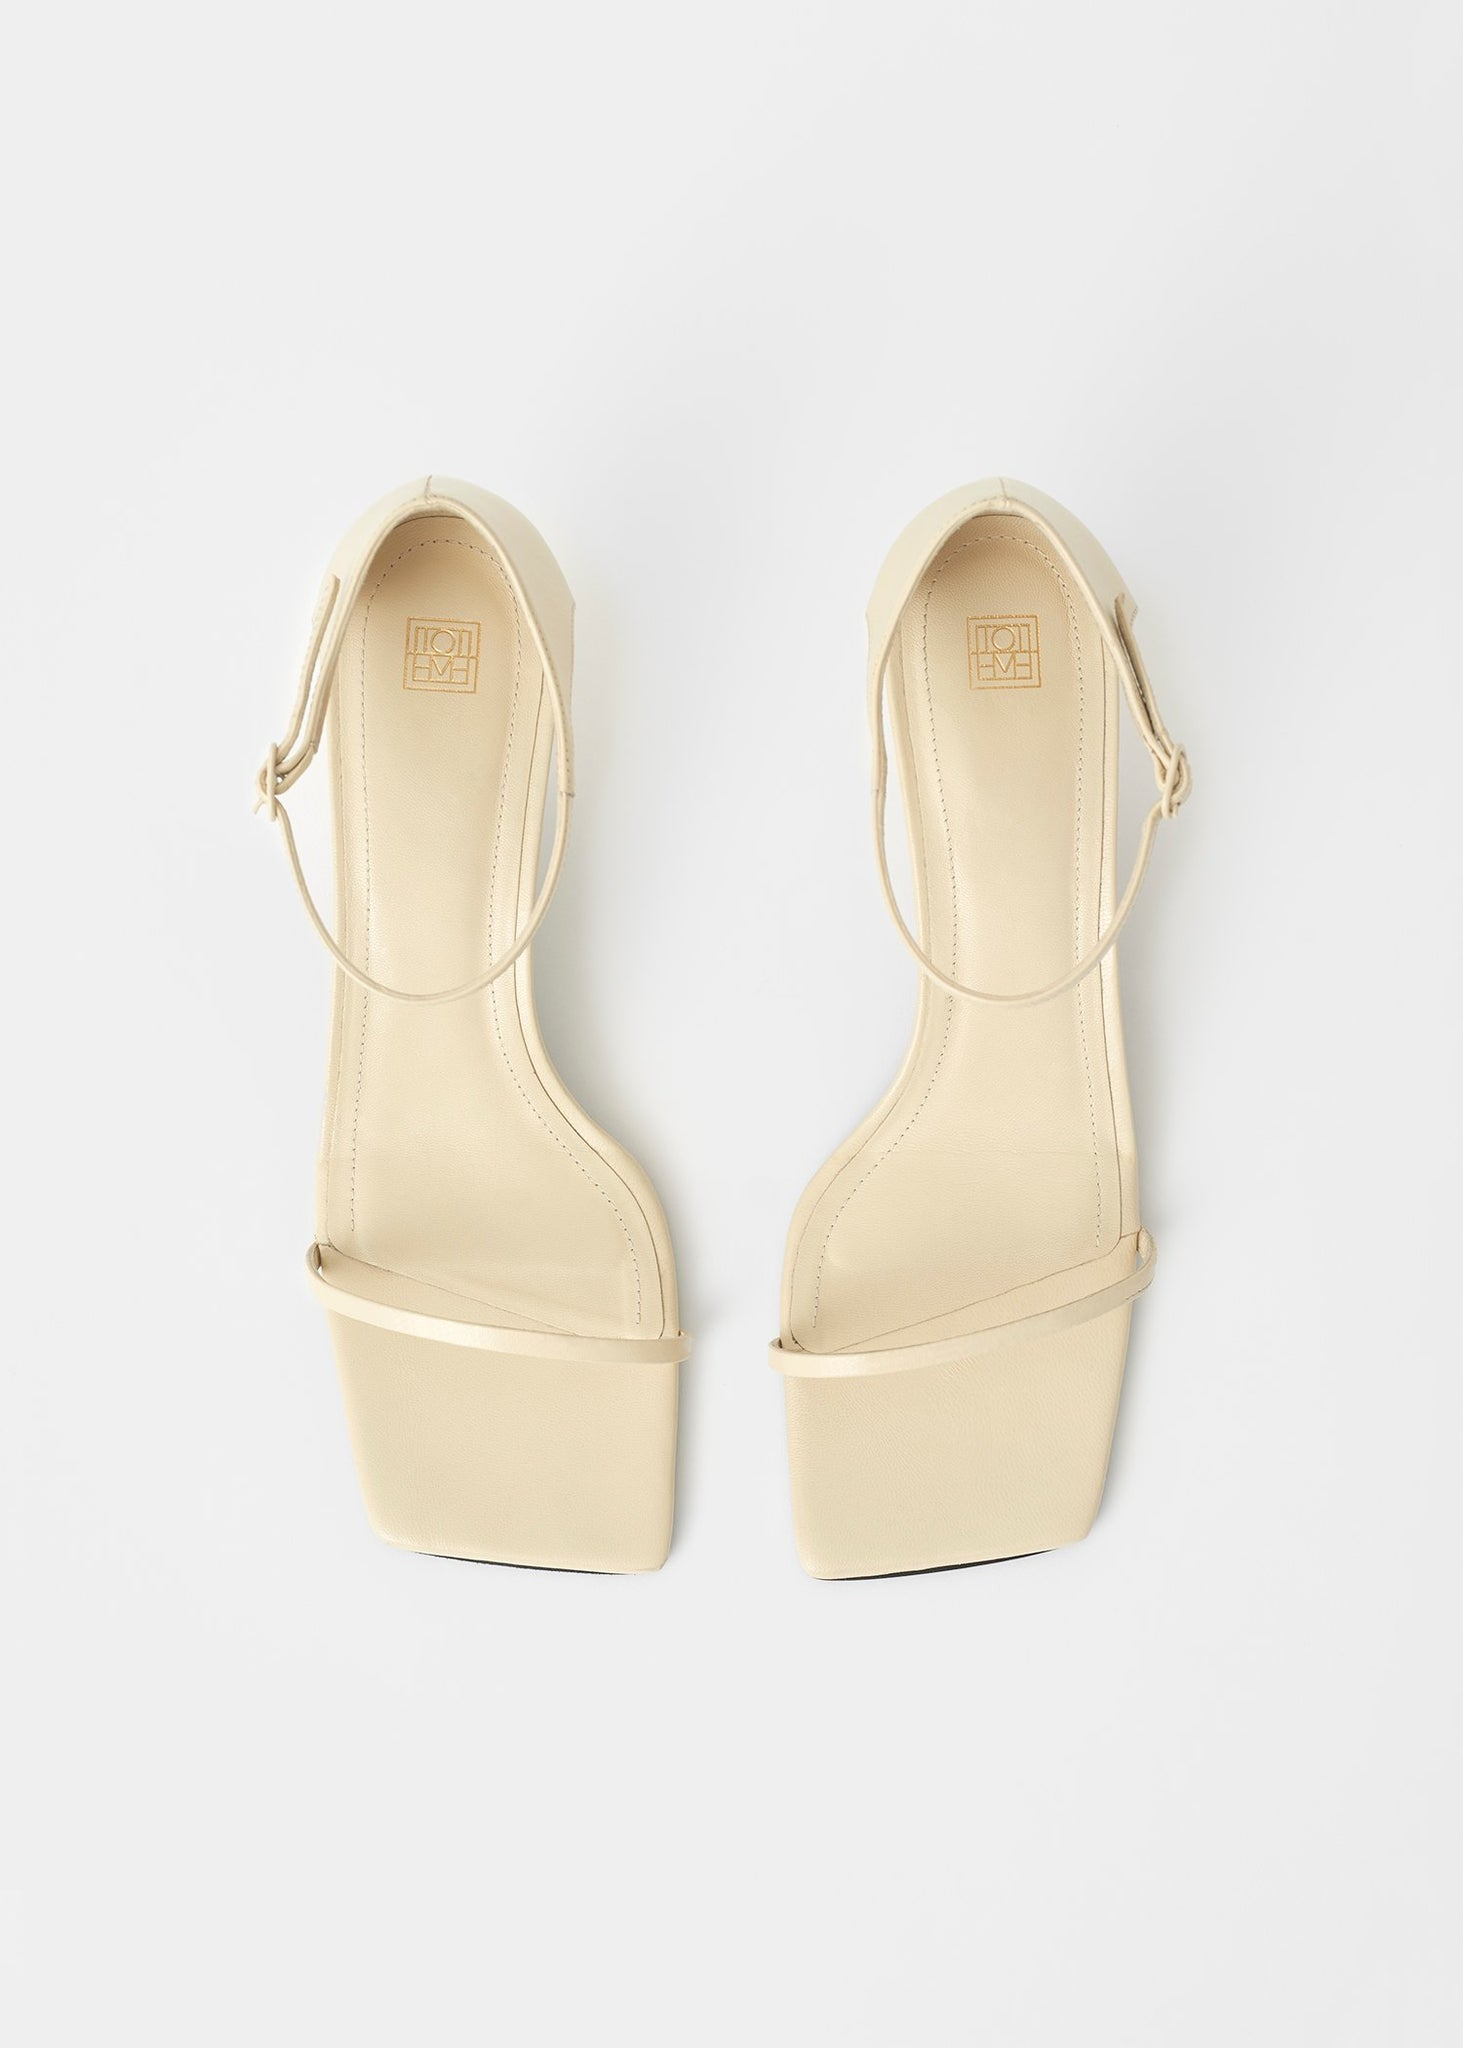 The Strappy Sandal ivory